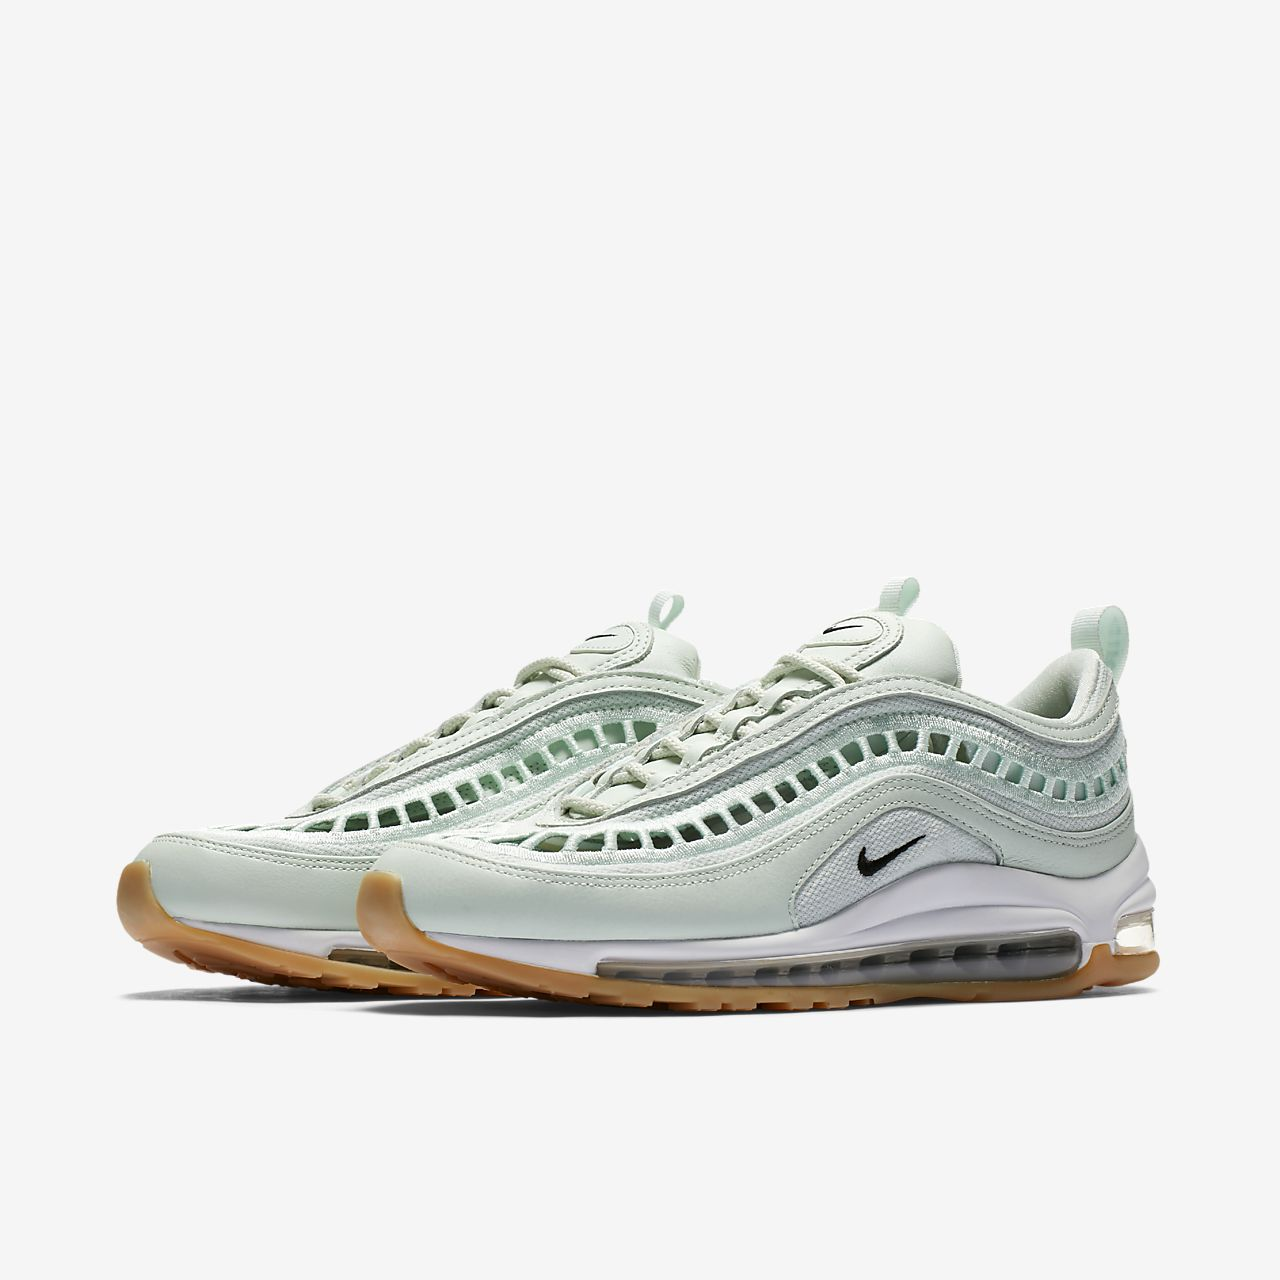 Nike Air Max 97 Ultra Sequoia Green Tan Coming Soon • KicksOnFire